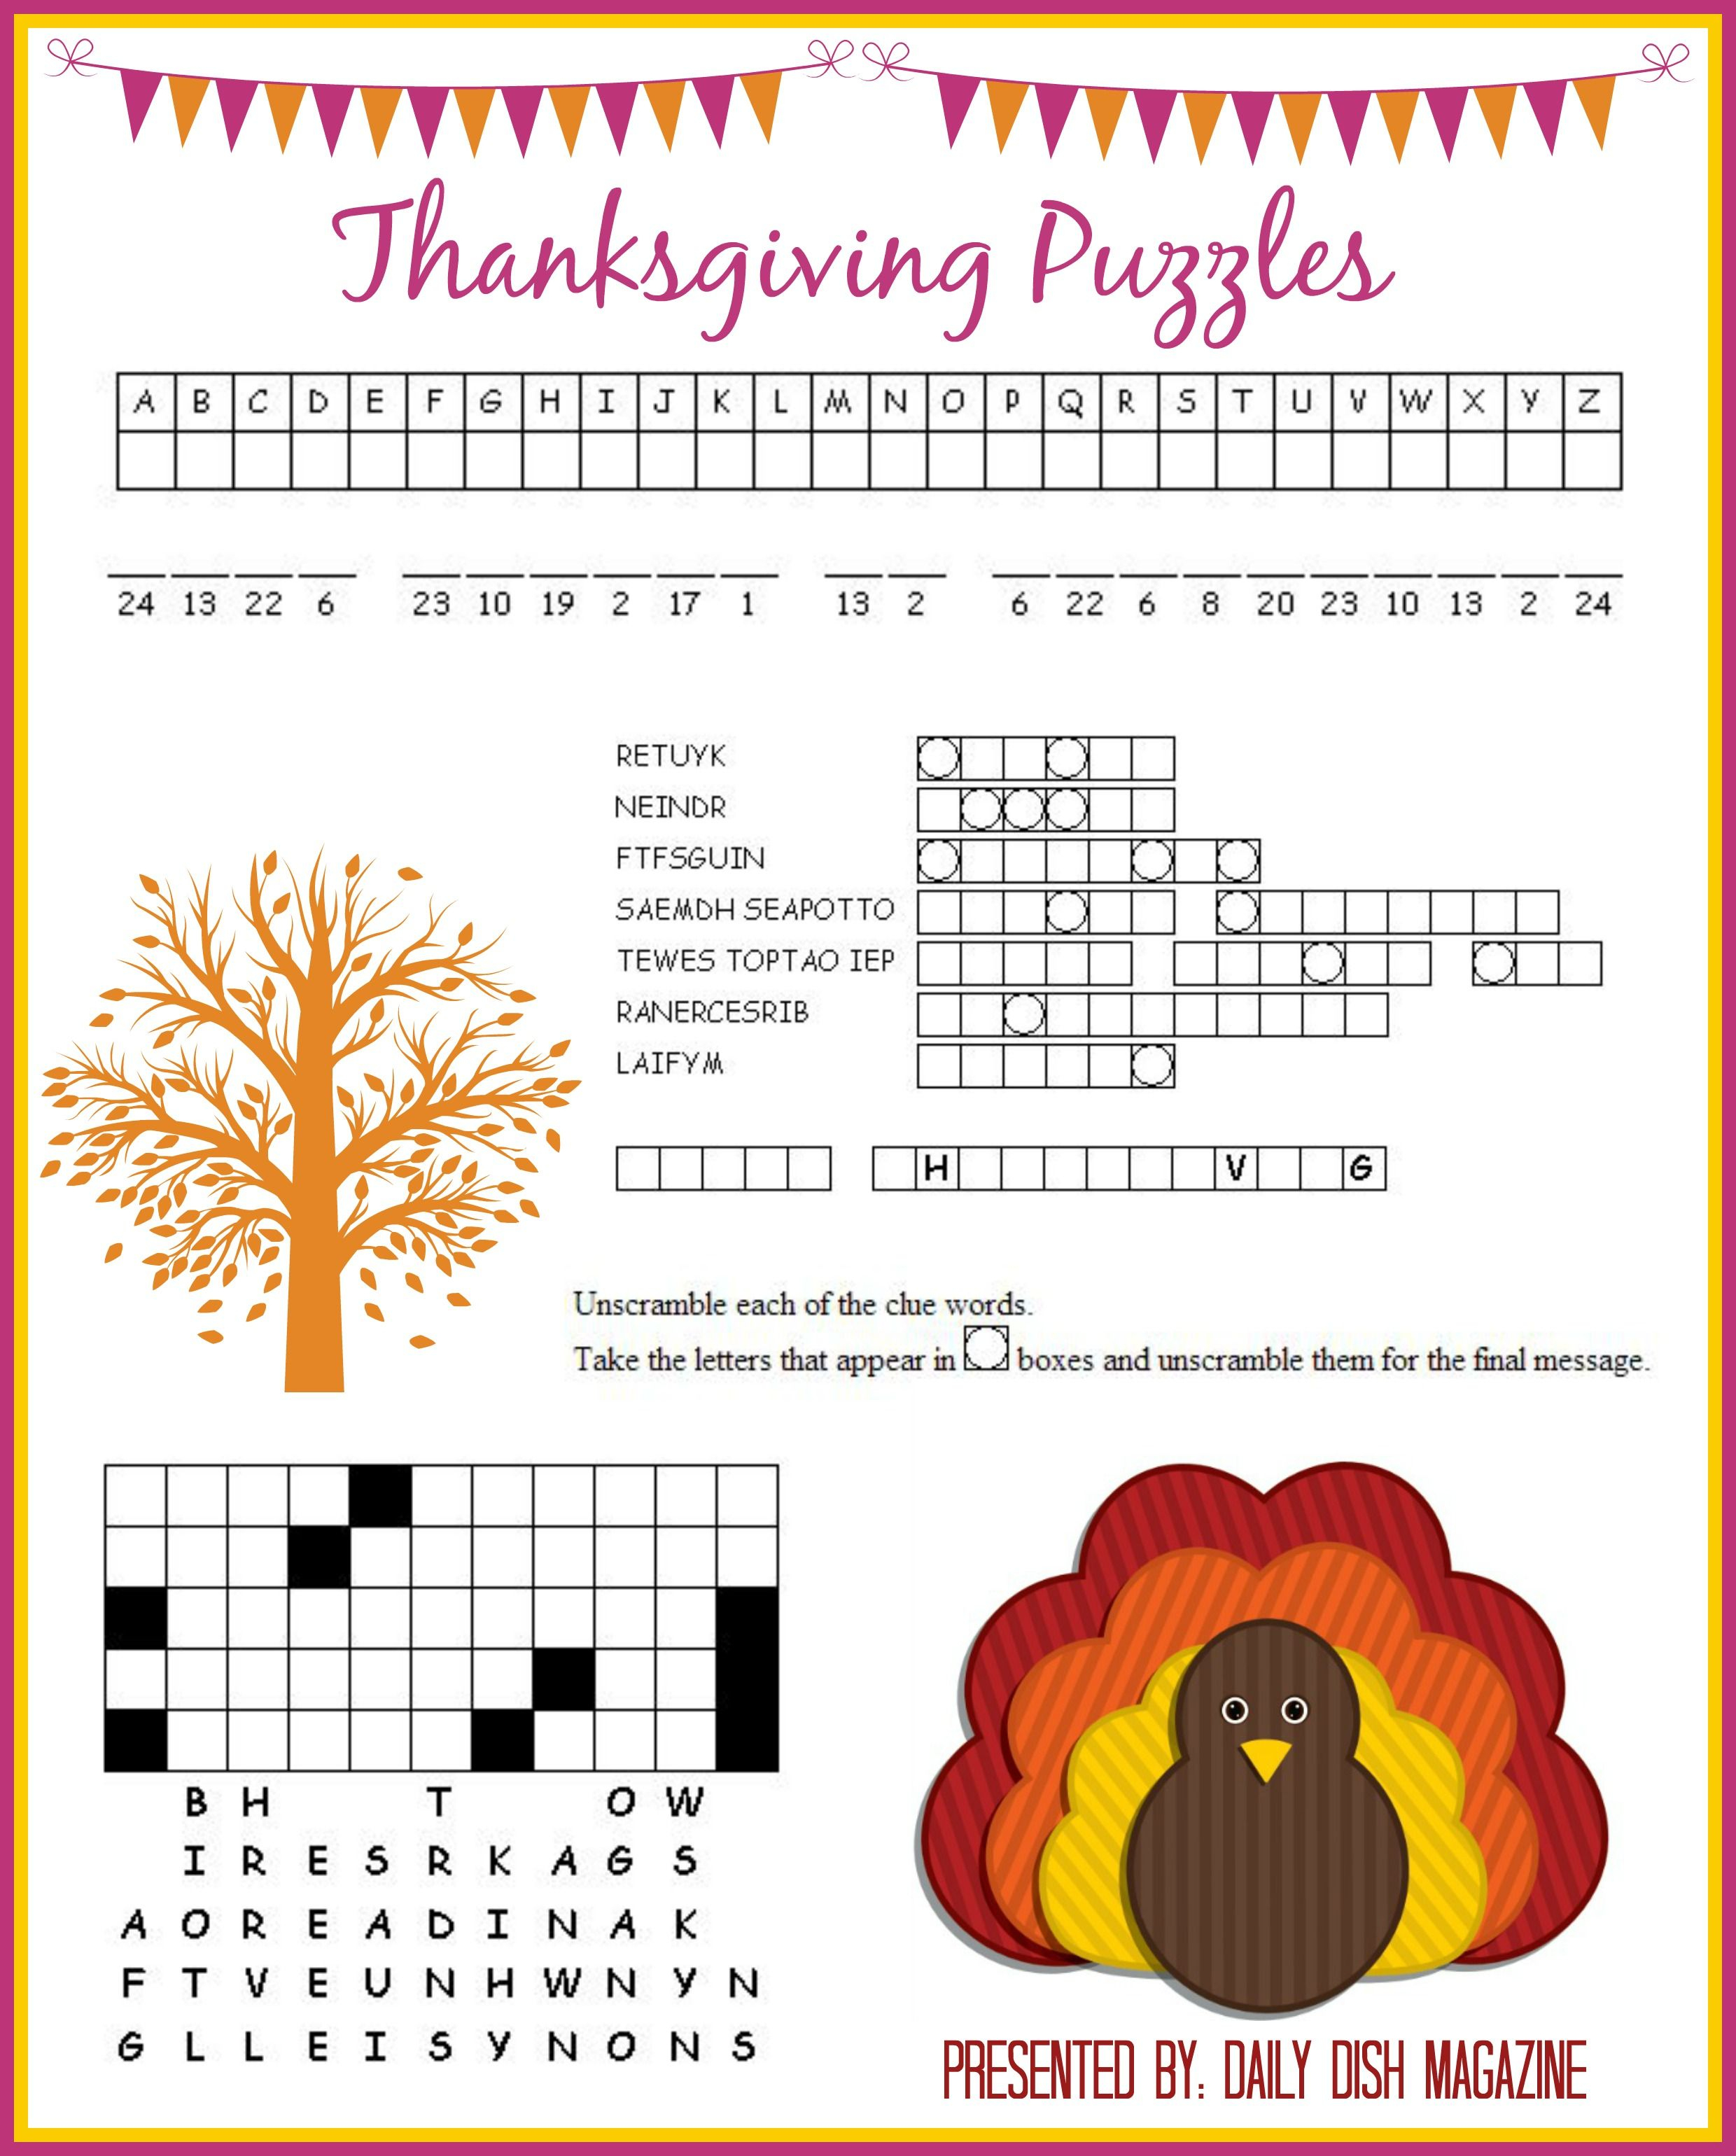 Thanksgiving Puzzles Printables   *holidays We Celebrate - Thanksgiving Crossword Puzzles Printable Free